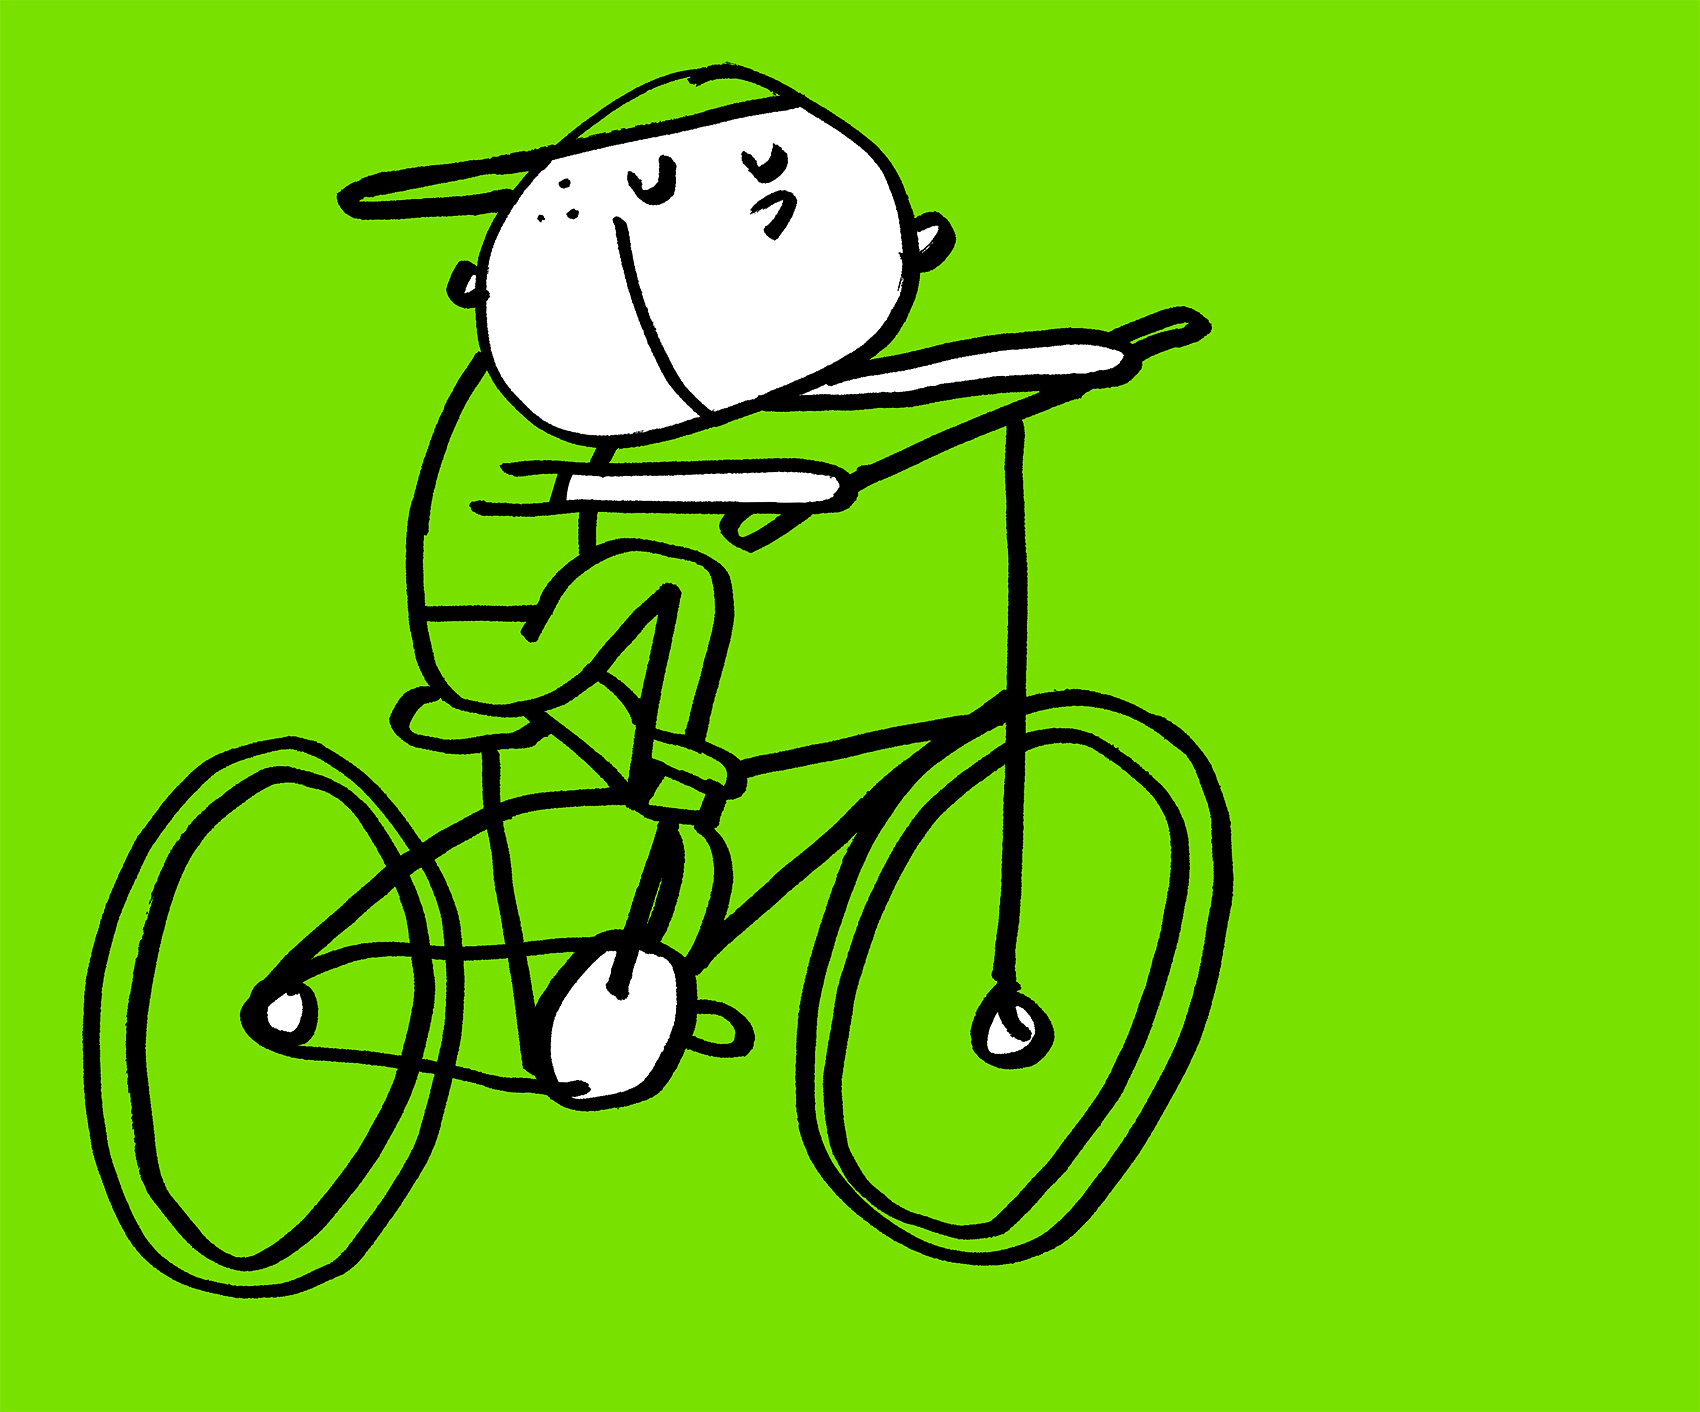 bicycle_green.jpg